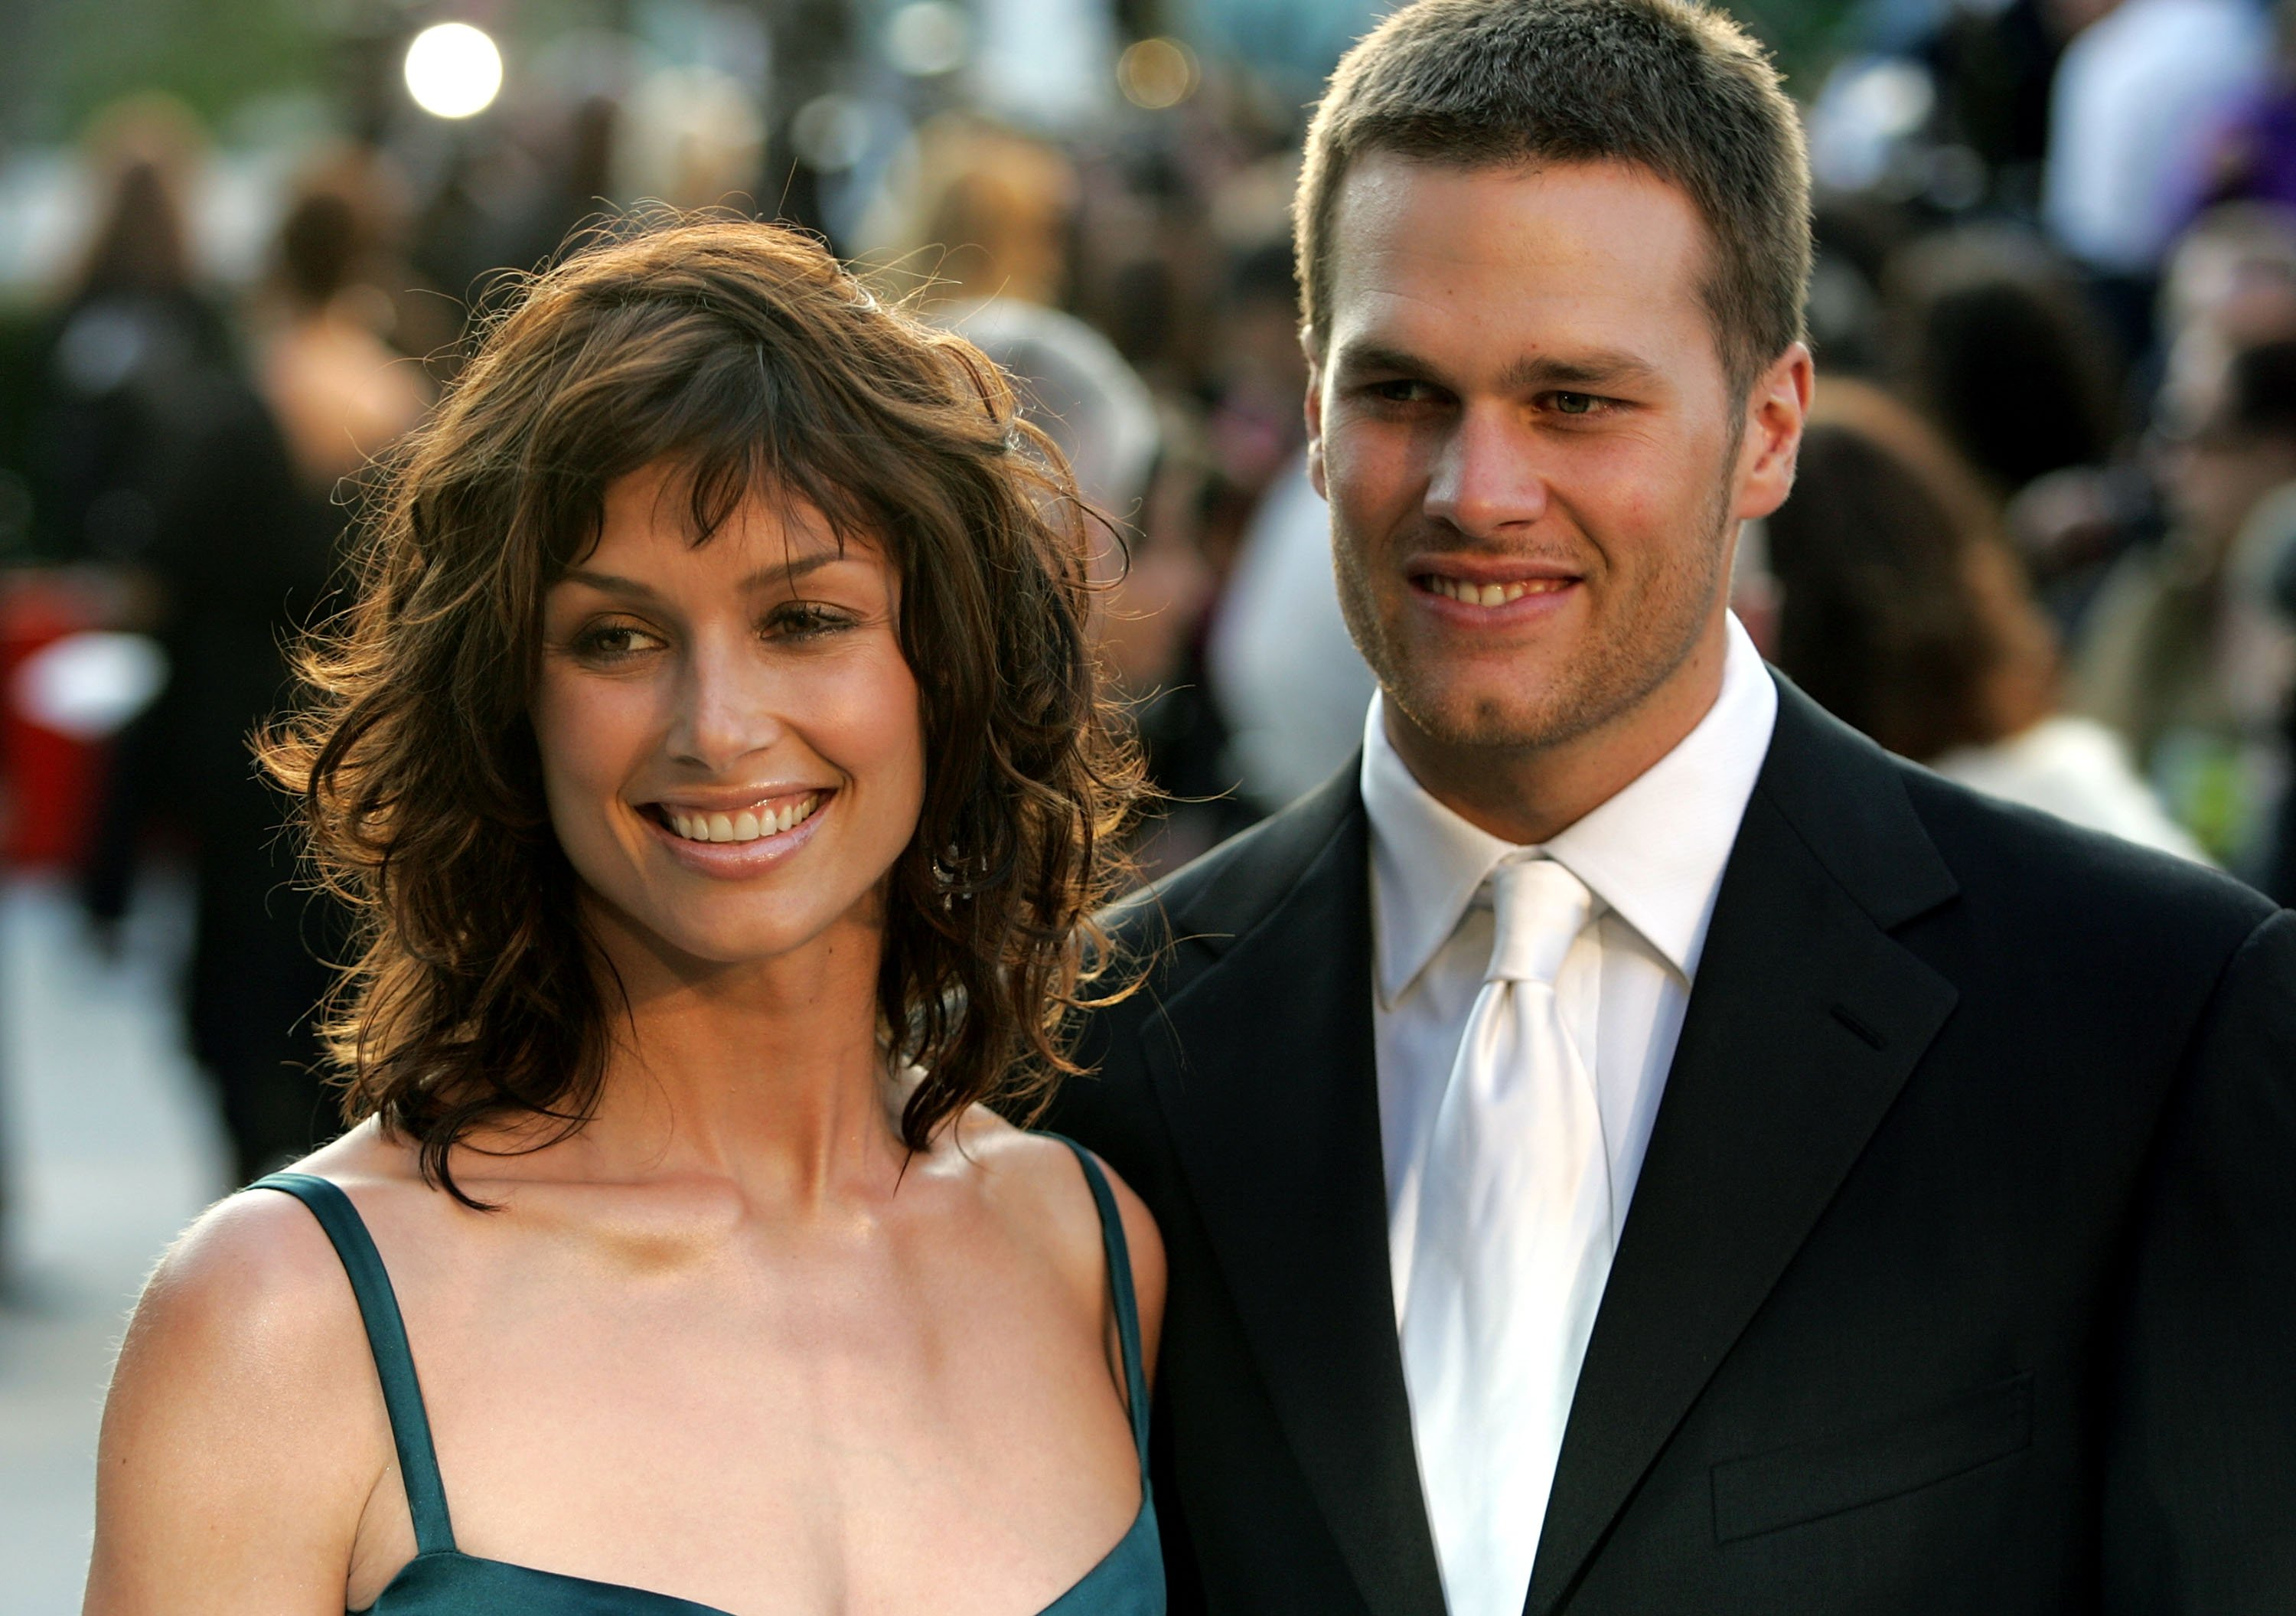 Bridget Moynahan and Tom Brady arrive at the Vanity Fair Oscar Party in West Hollywood, California on February 27, 2005 | Photo: Getty Images